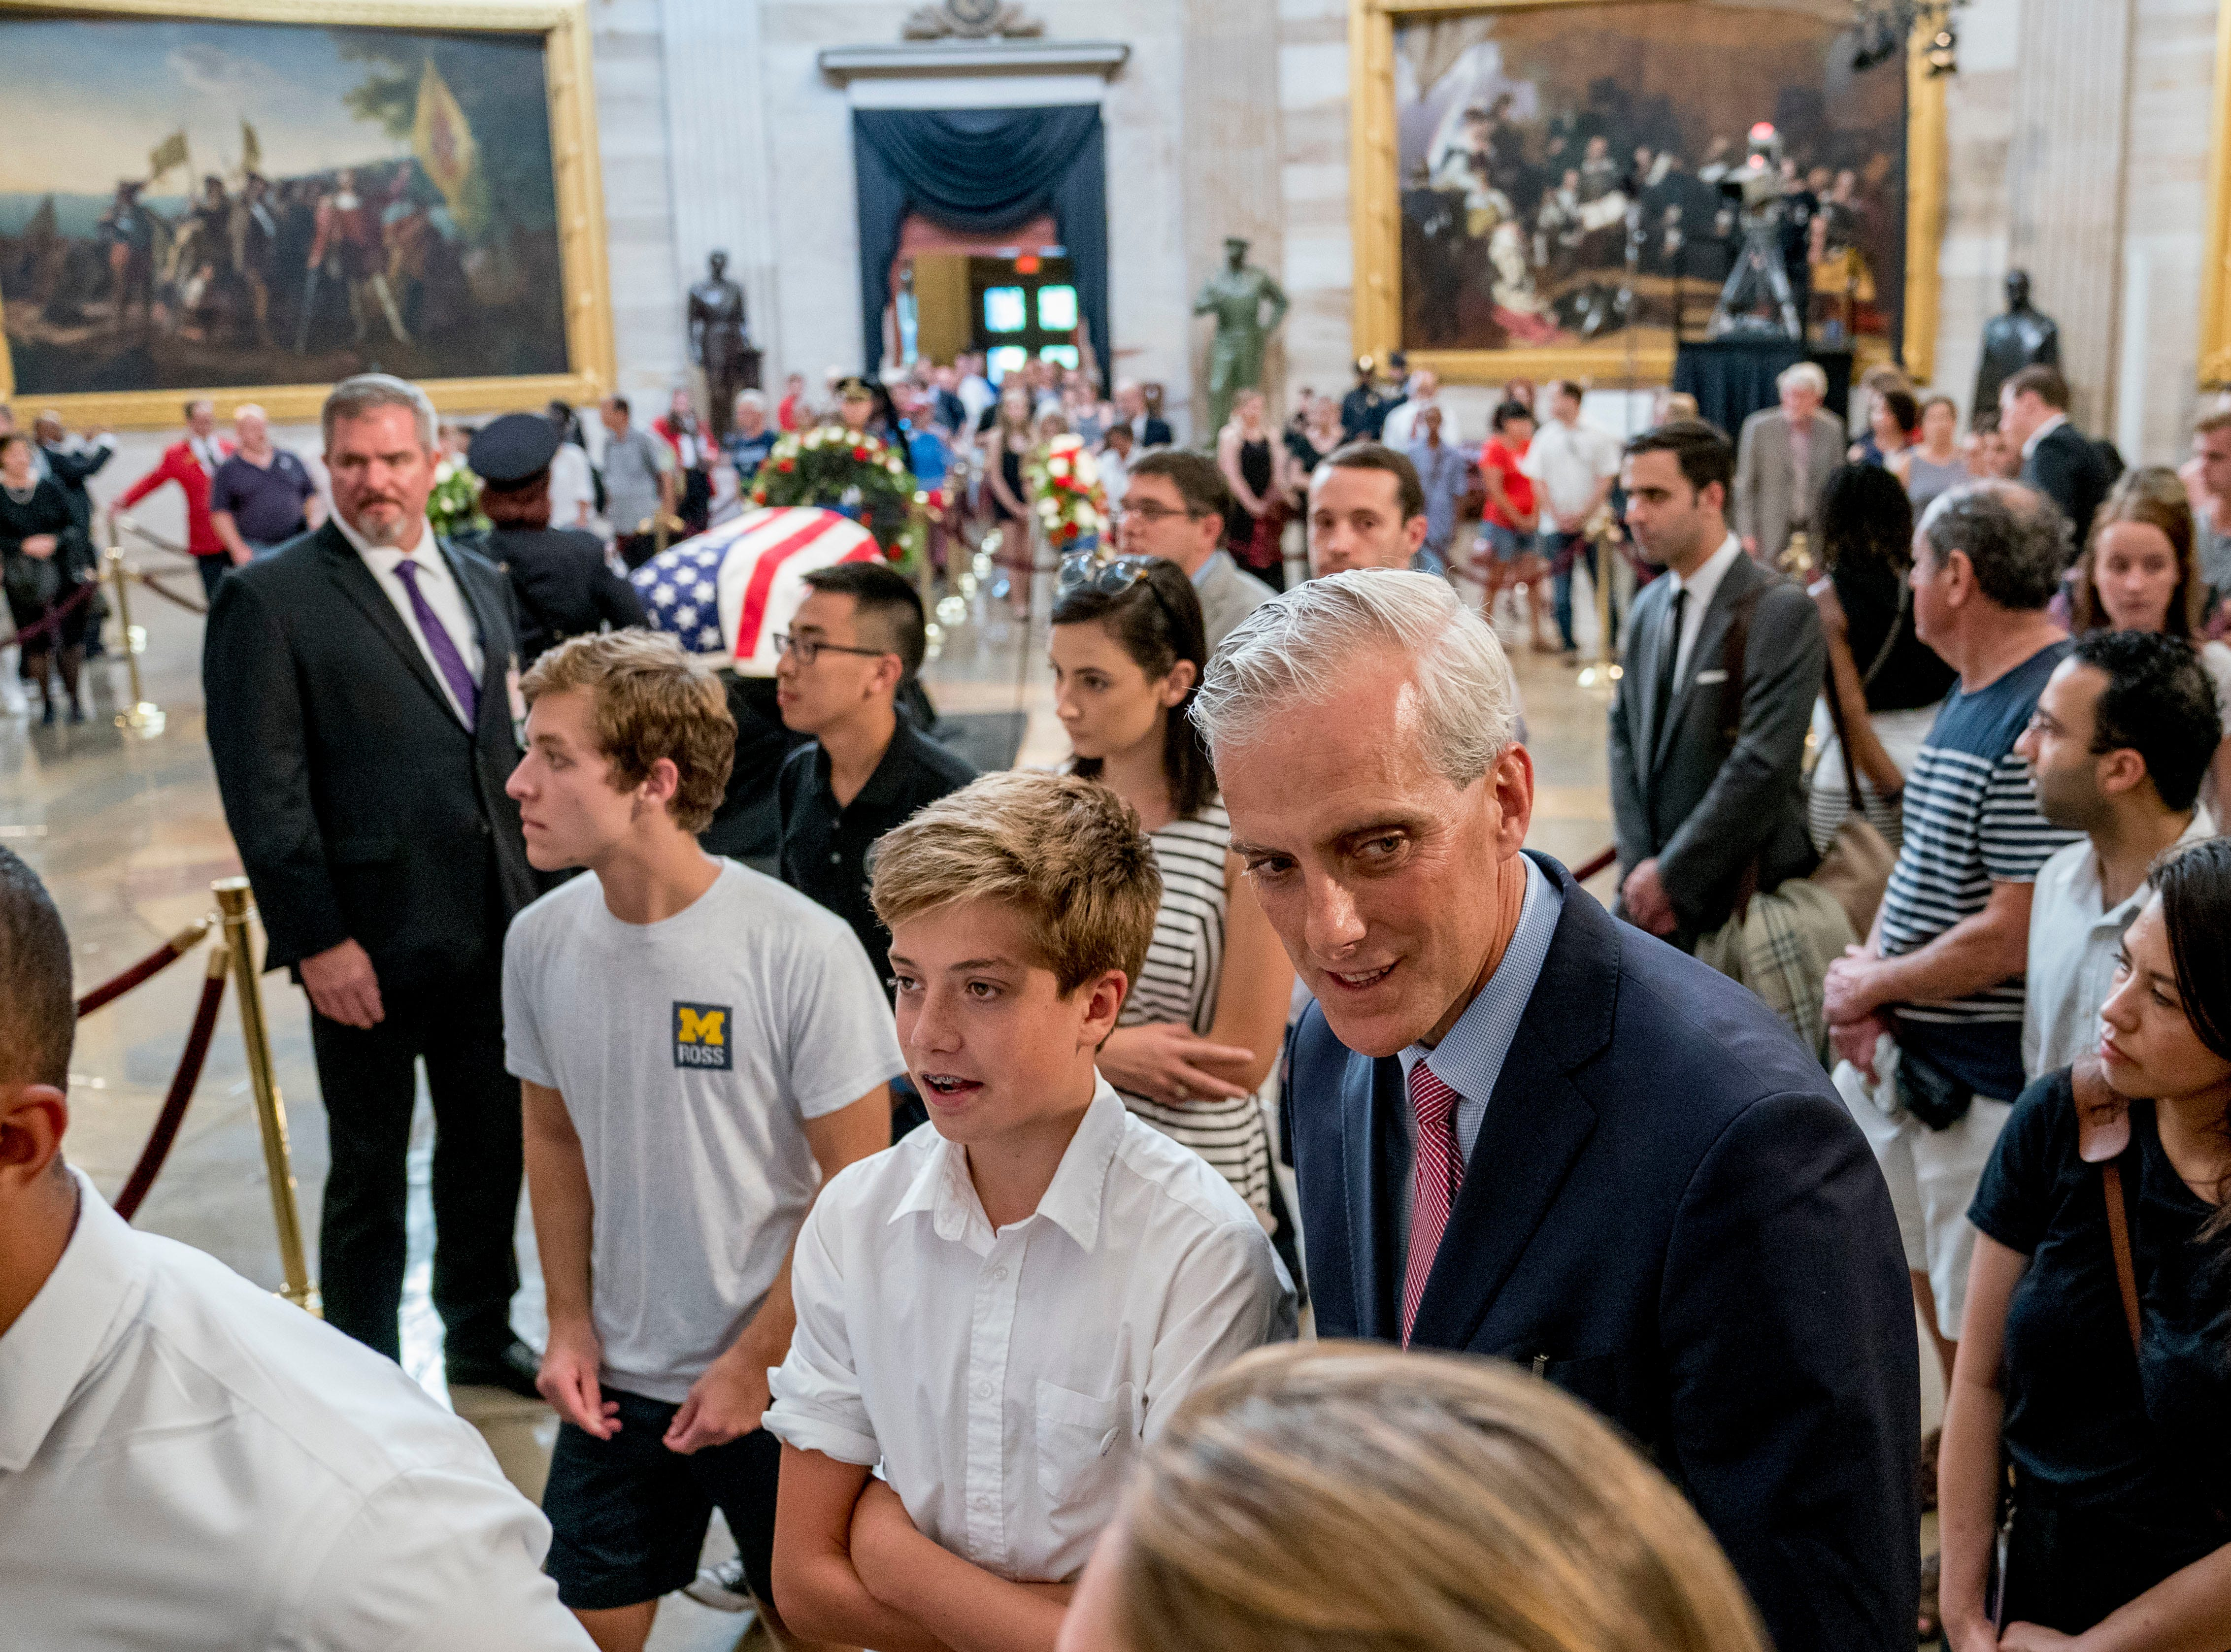 President Barack Obama's White House Chief of Staff Denis McDonough, center right, walks through the Rotunda as Sen. John McCain, R-Ariz., lies in state at the U.S. Capitol, Friday, Aug. 31, 2018, in Washington. (AP Photo/Andrew Harnik)